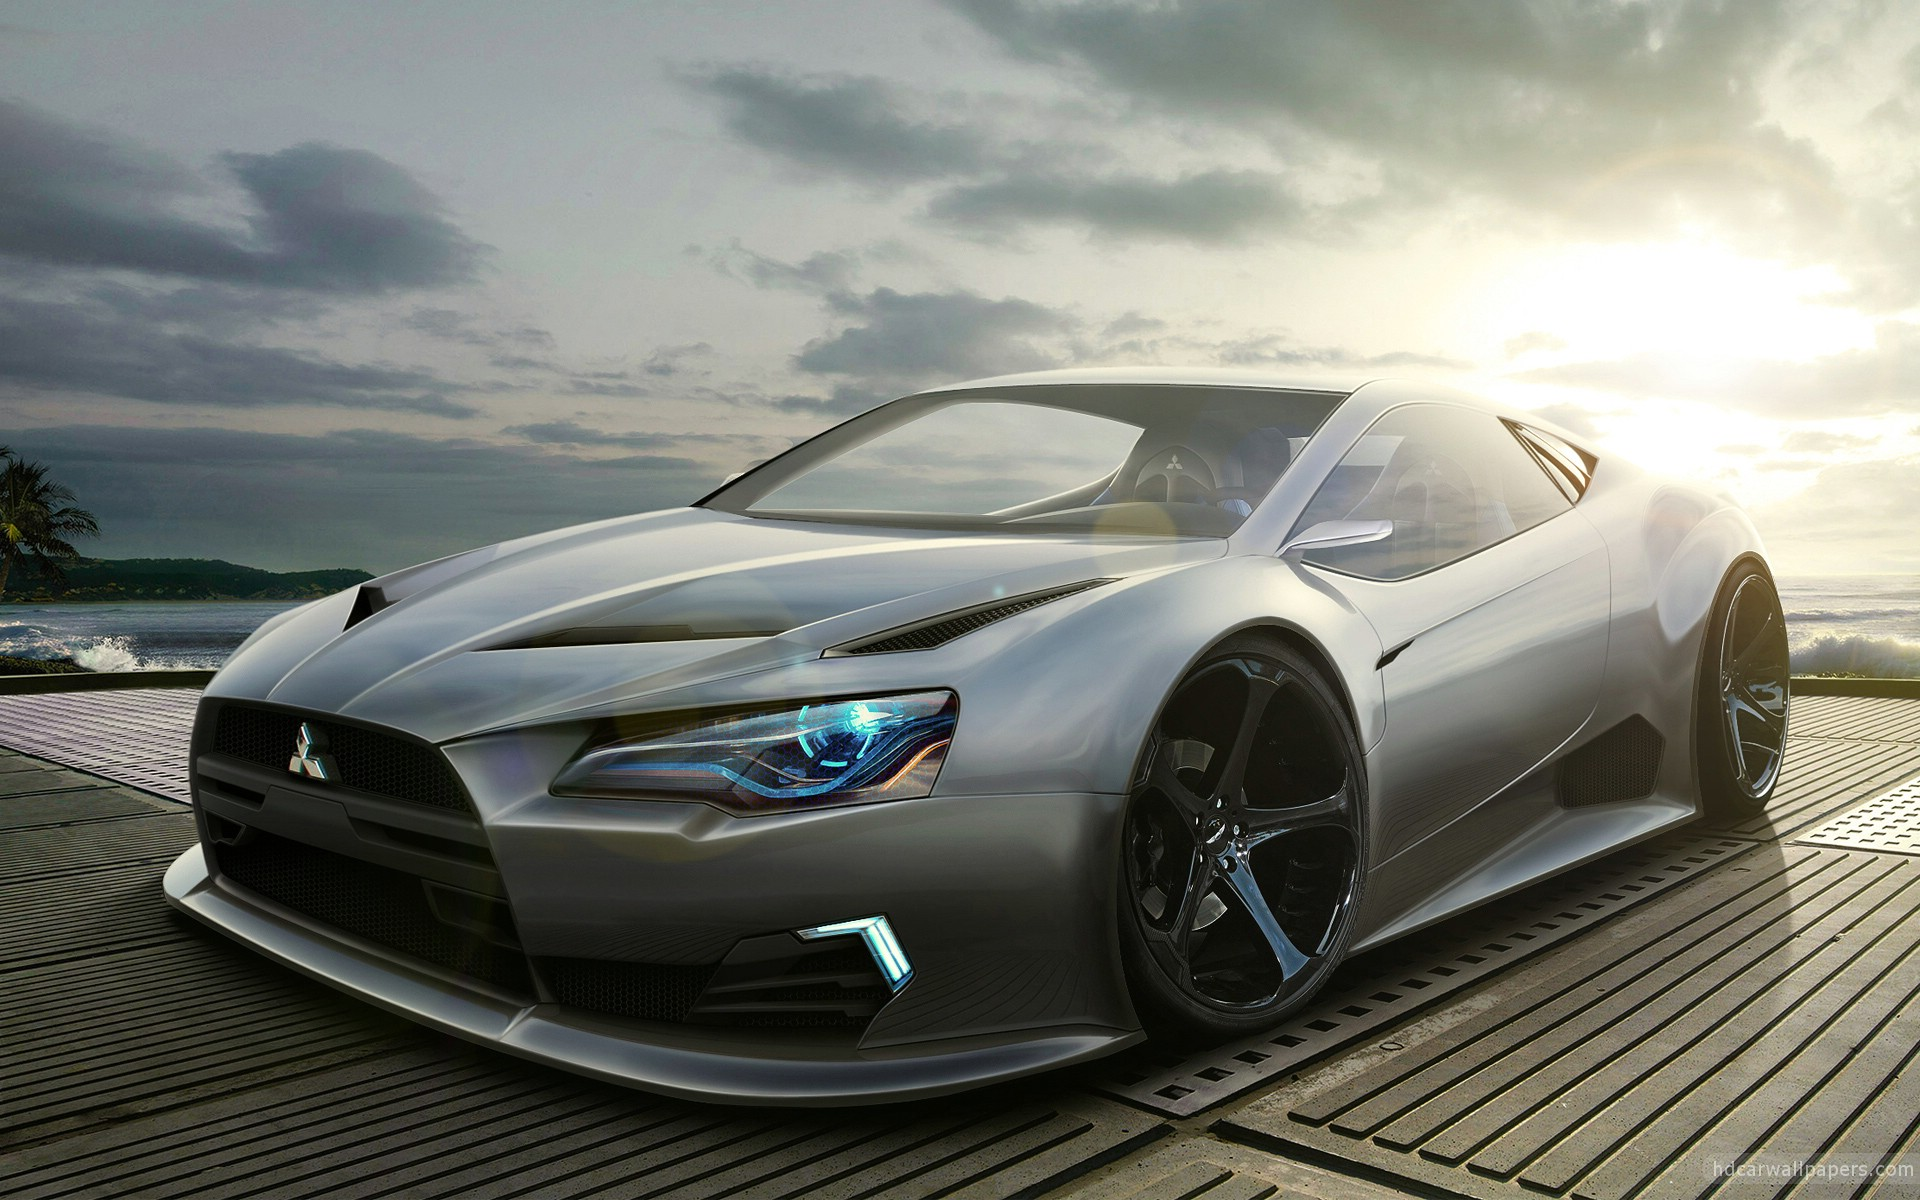 Mitsubishi Concept Wallpaper | HD Car Wallpapers | ID #2090